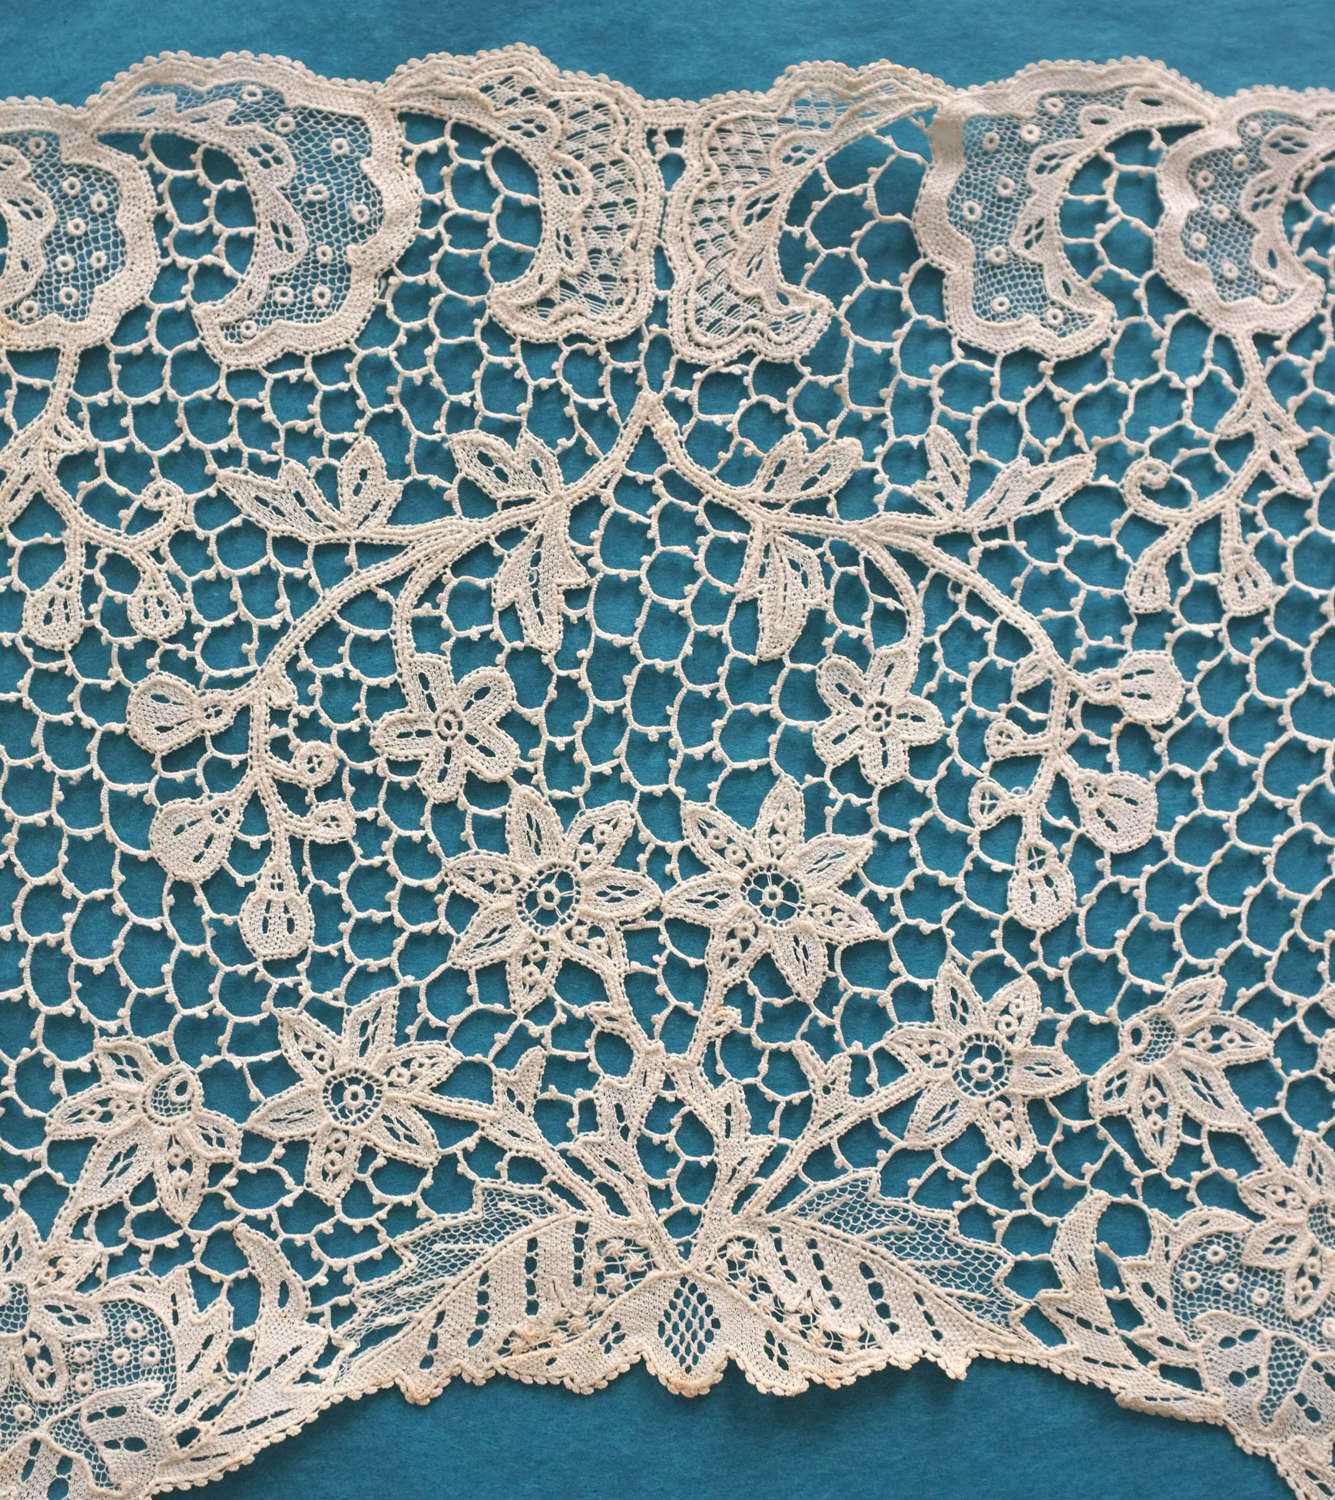 Antique Youghal Needle Lace Collar, circa 1895